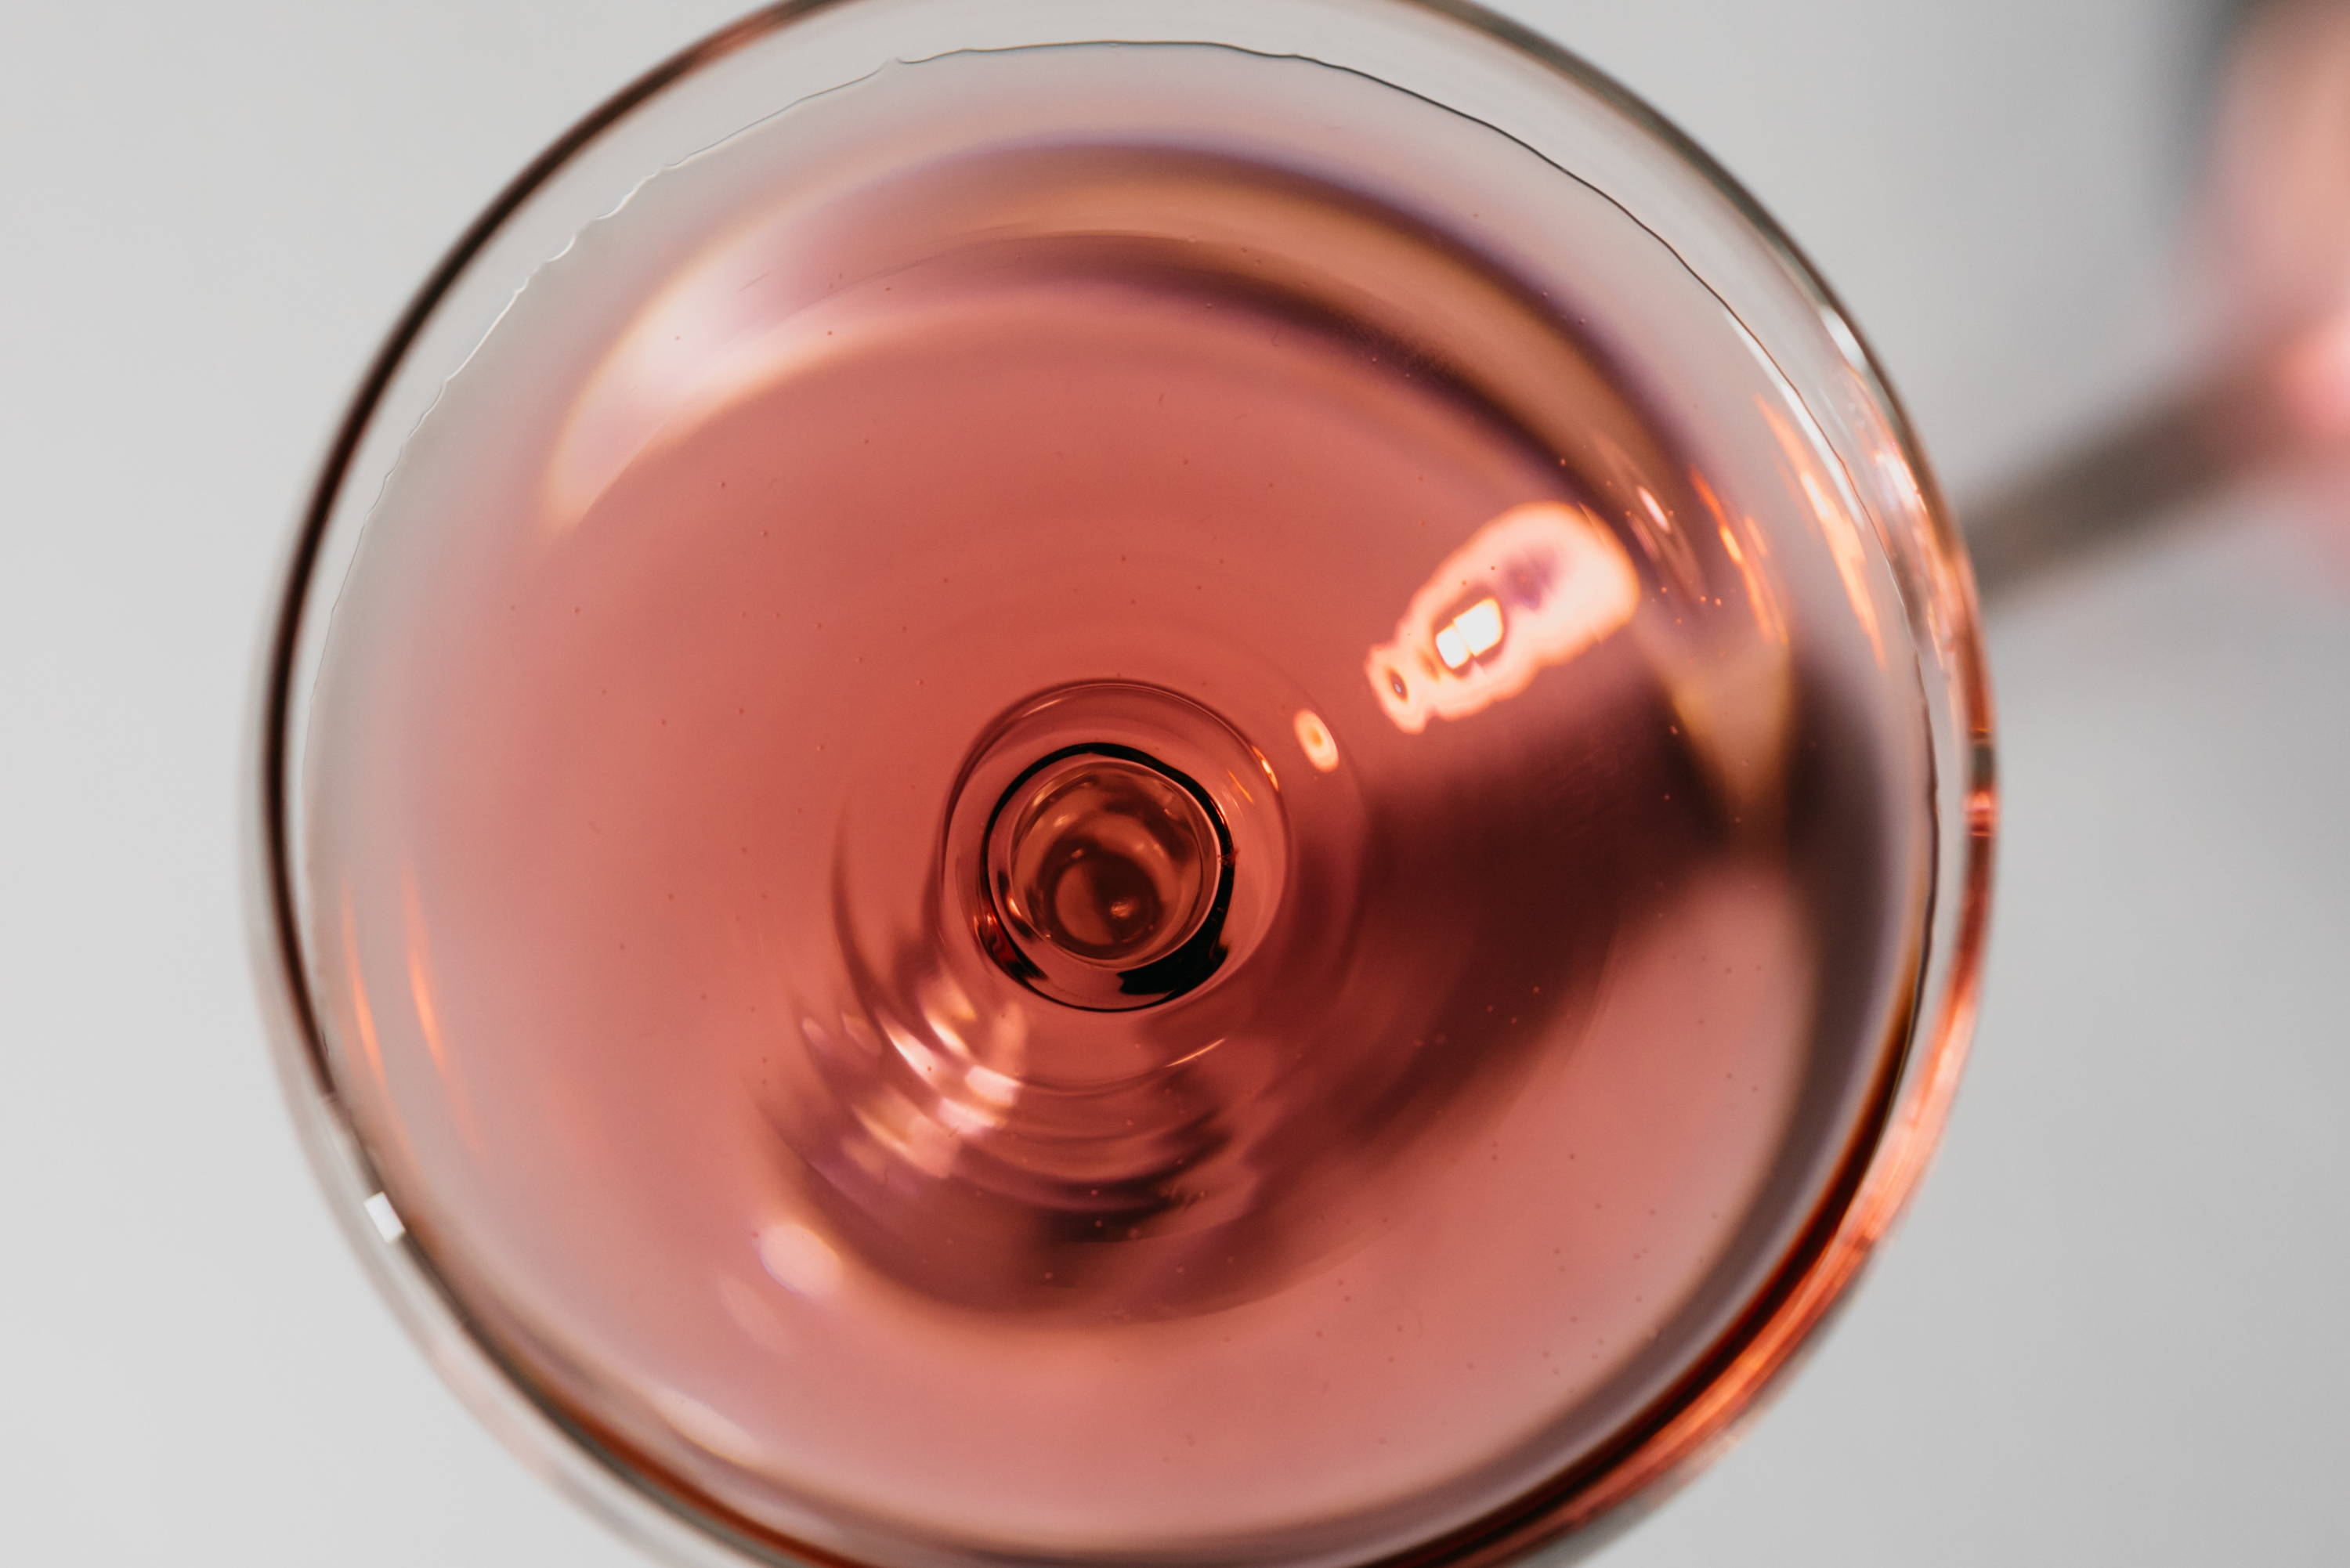 Top view inside rose glass staying true to its heritage; light red in colour and crisp.